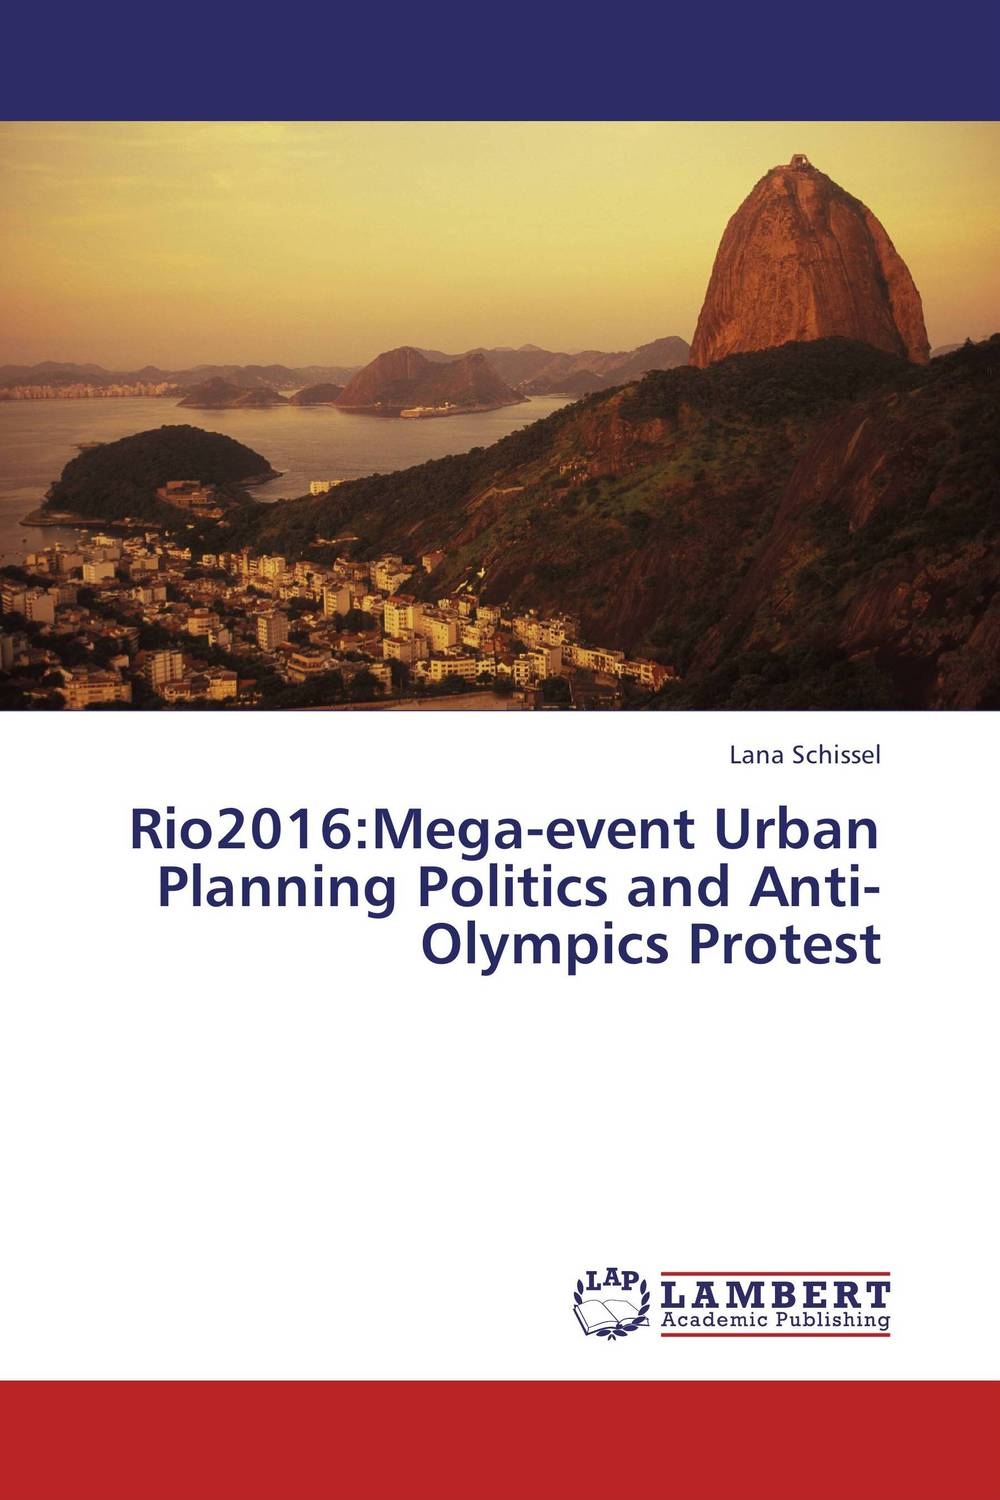 Rio2016:Mega-event Urban Planning Politics and Anti-Olympics Protest evaluation of the impact of a mega sporting event